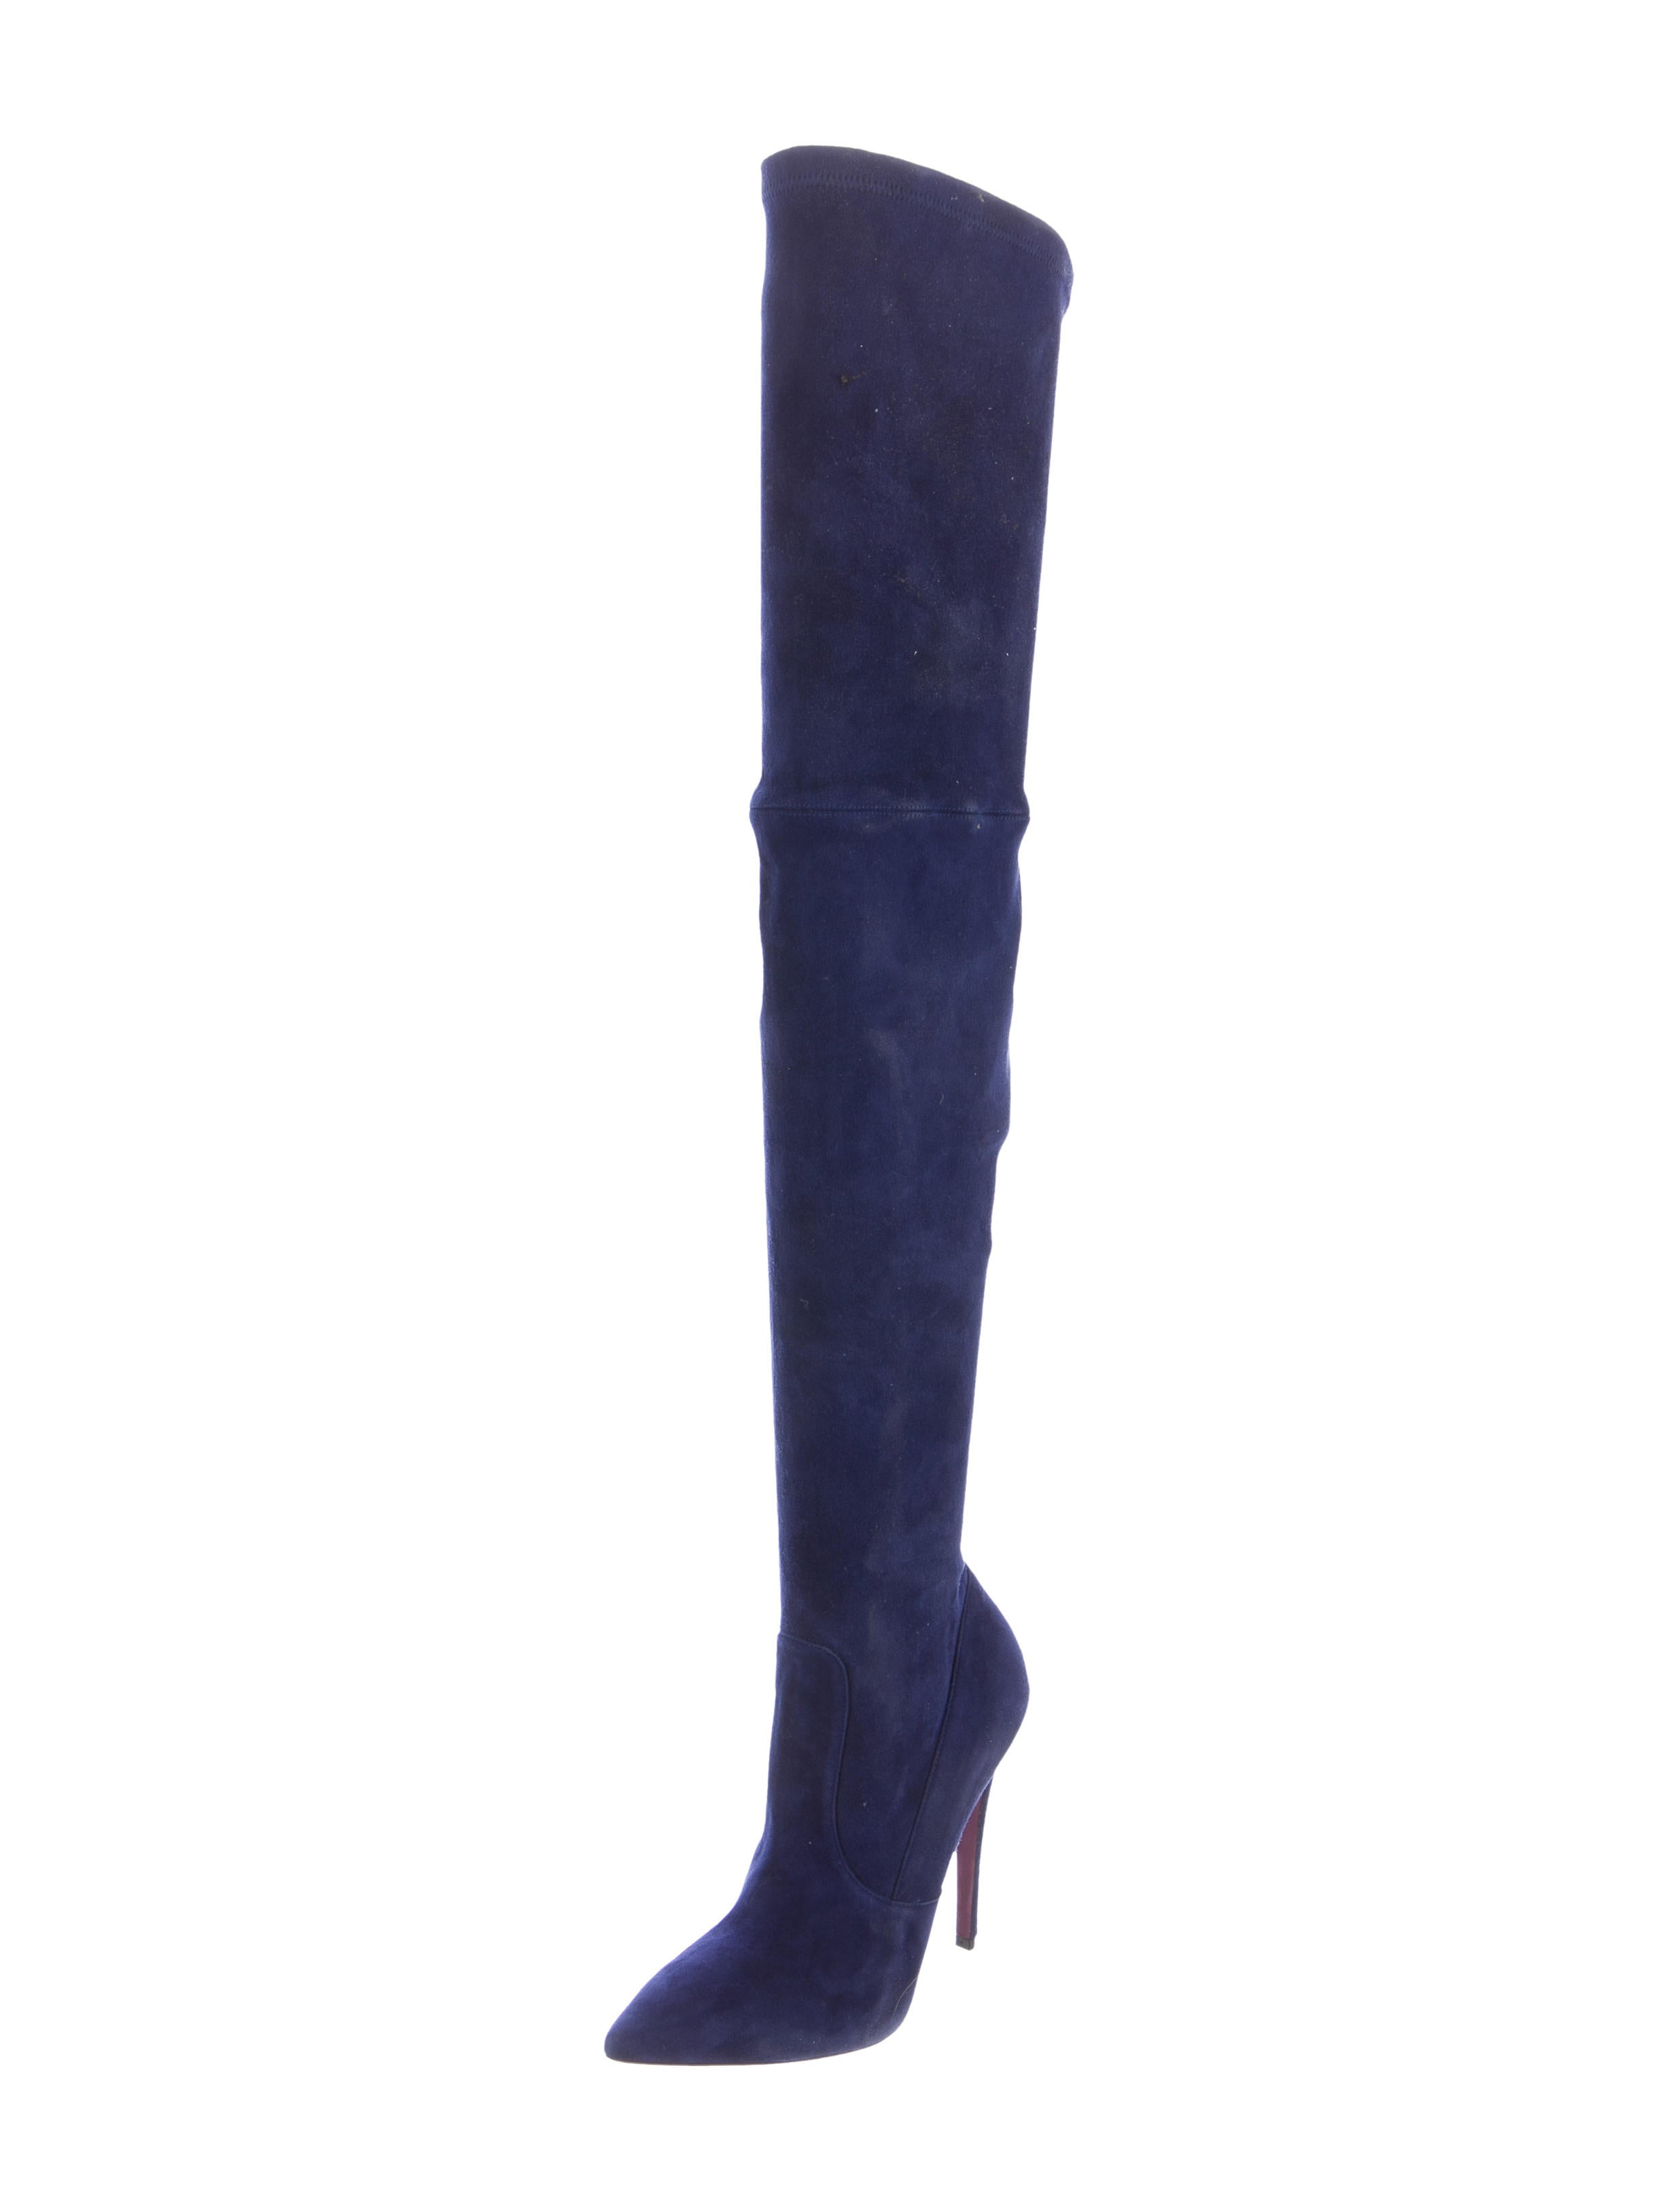 Amanda Gregory 2017 Suede Over-The-Knee Boots websites online free shipping wiki discount outlet store cheap sale best sale newest 7x1Ak